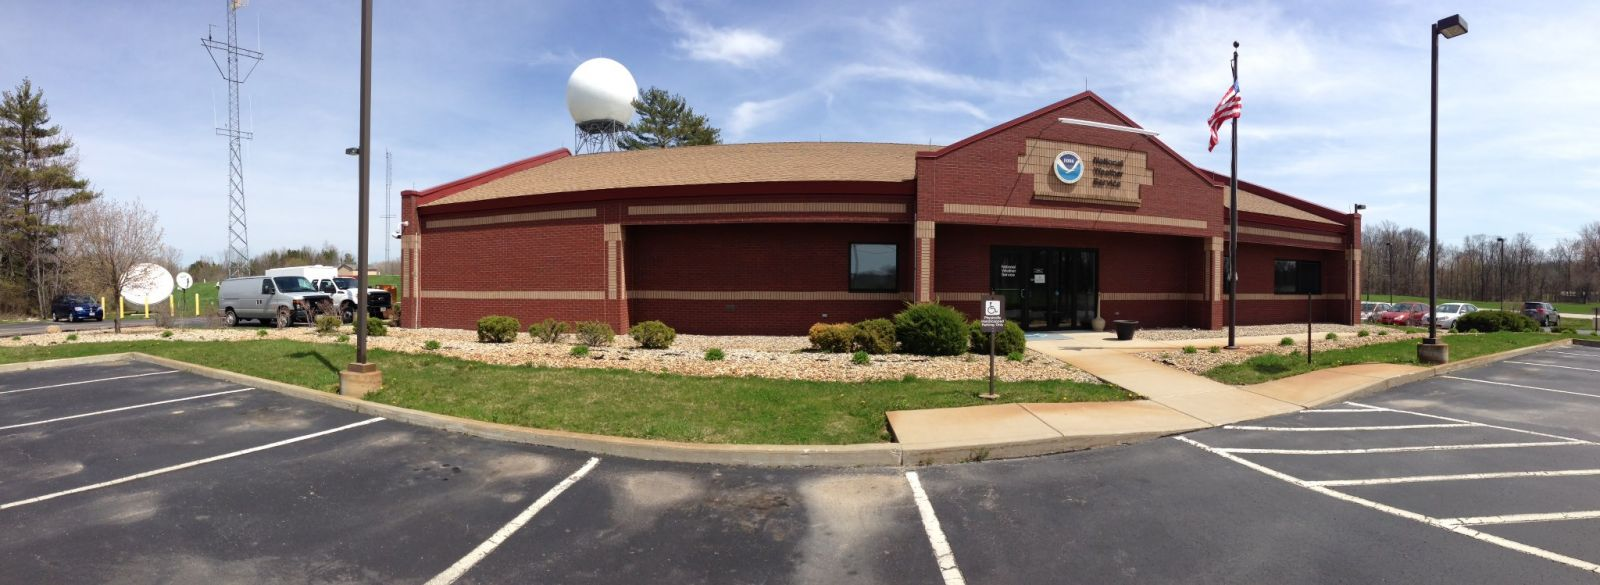 Northern Indiana National Weather Service Weather Forecast Office (exterior view)